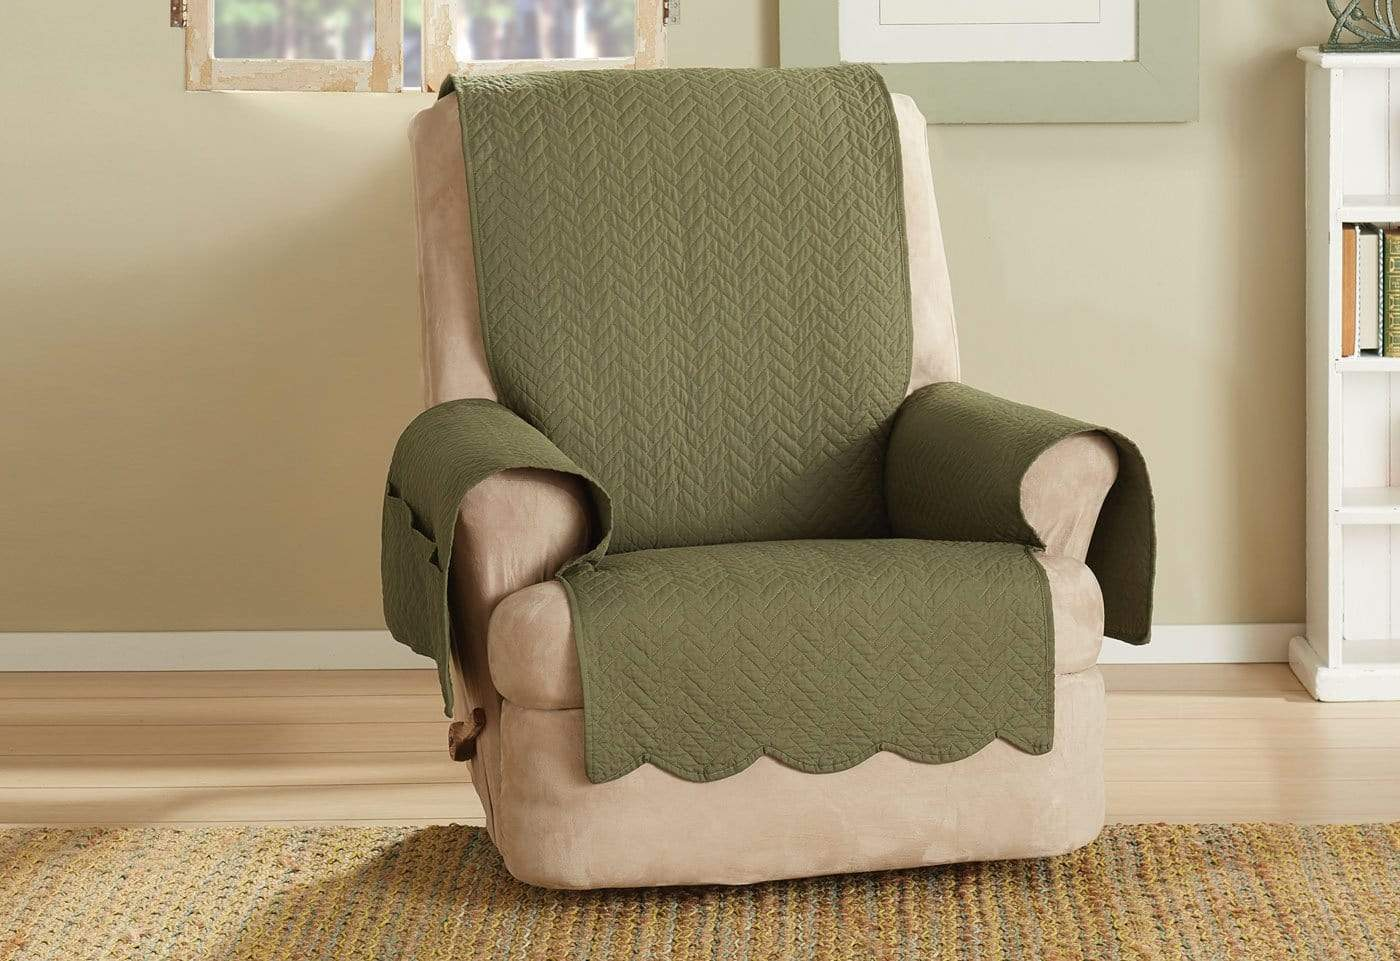 Vintage Washed Chevron Recliner Furniture Cover Cotton Pet Furniture Cover Machine Washable - Recliner / Olive